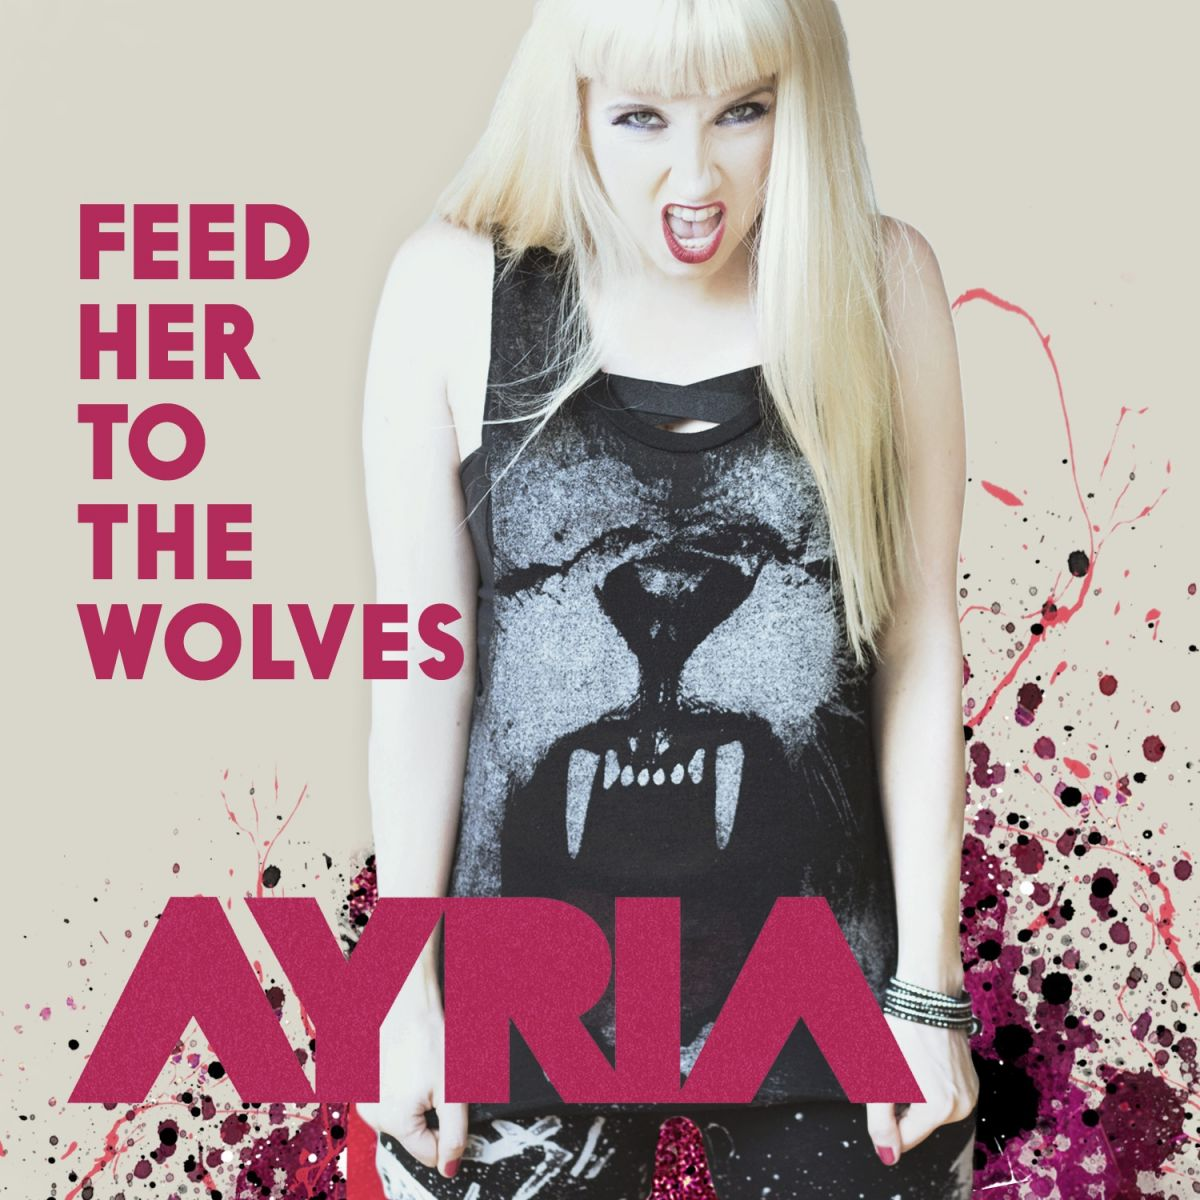 Ayria new EP